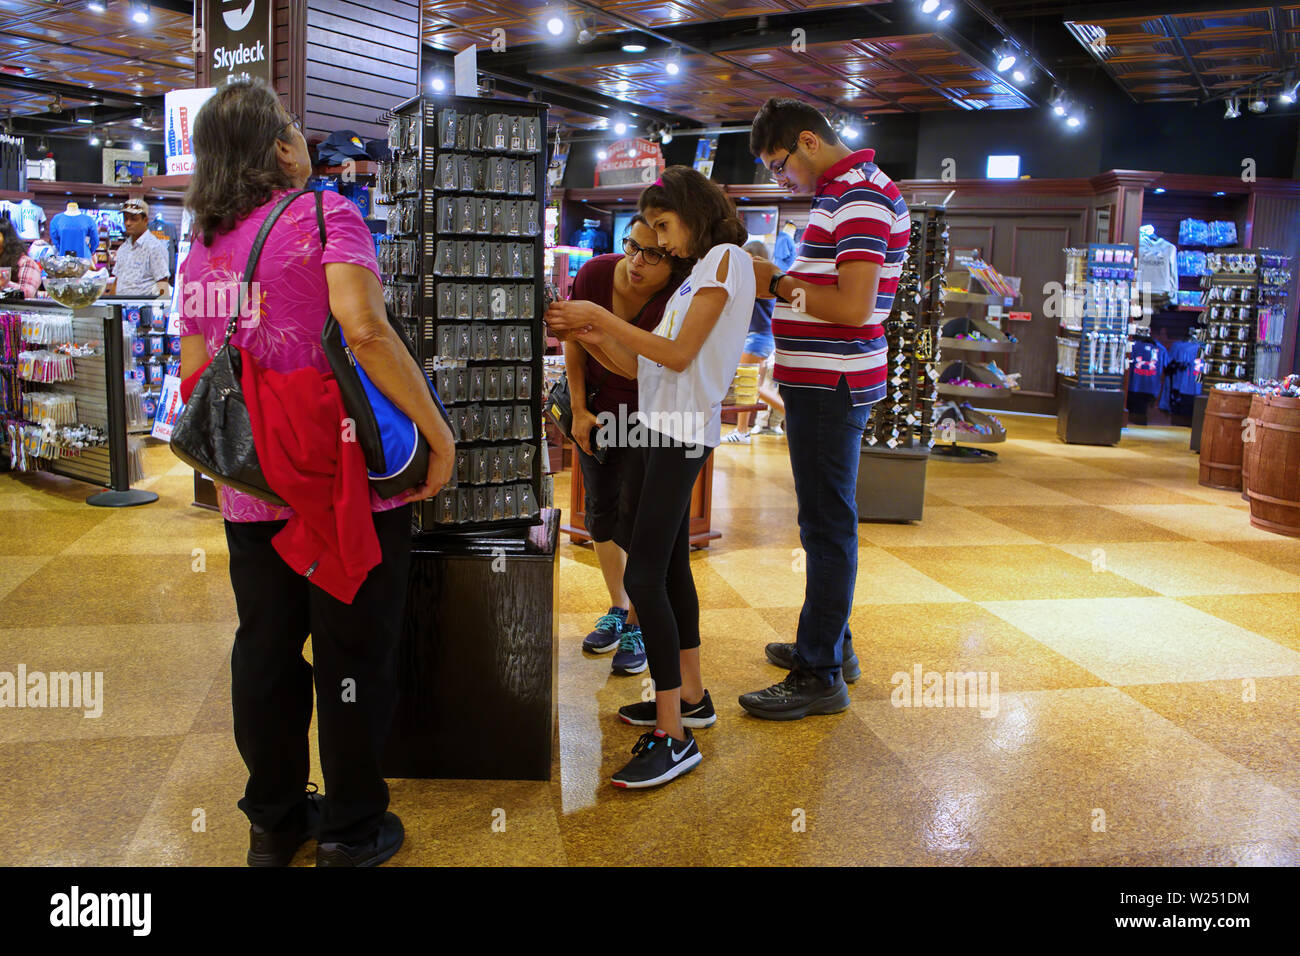 Willis Tower, Chicago, IL USA. Aug 2018. Tourists browsing for memorabilia from the gift shop. - Stock Image